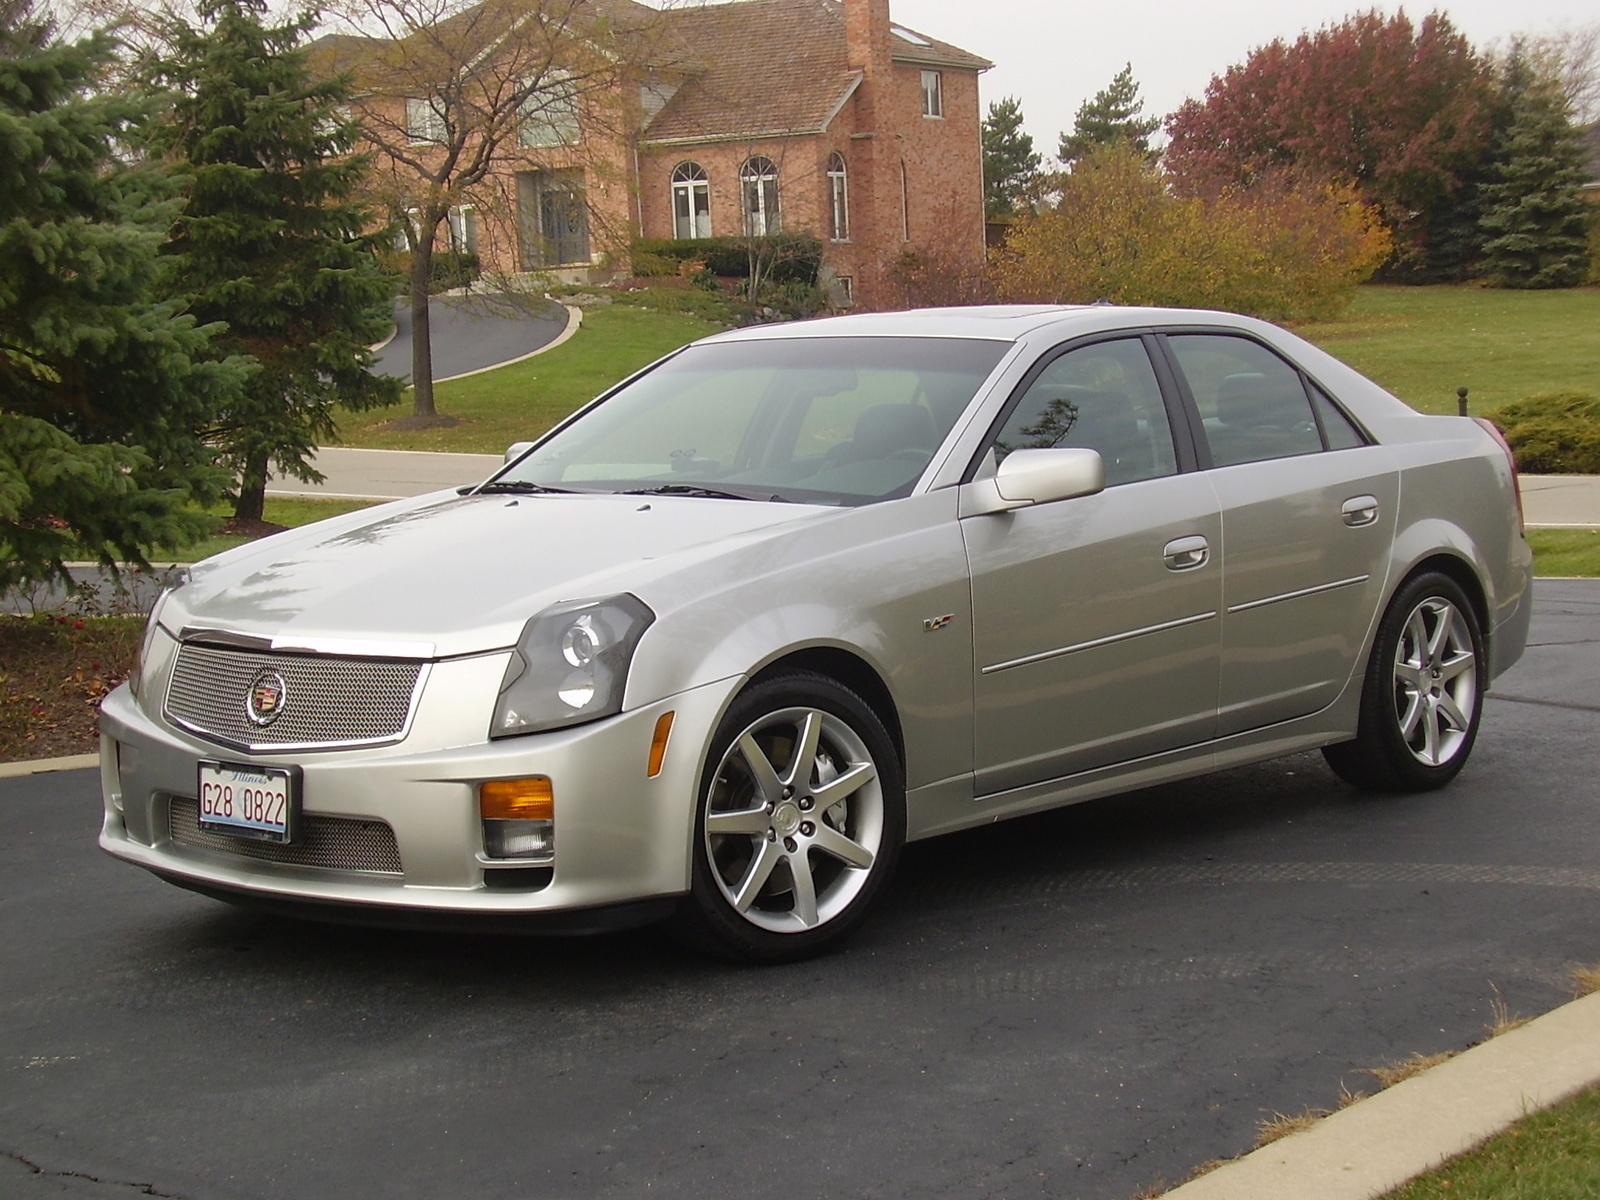 Picture of 2004 Cadillac CTS-V